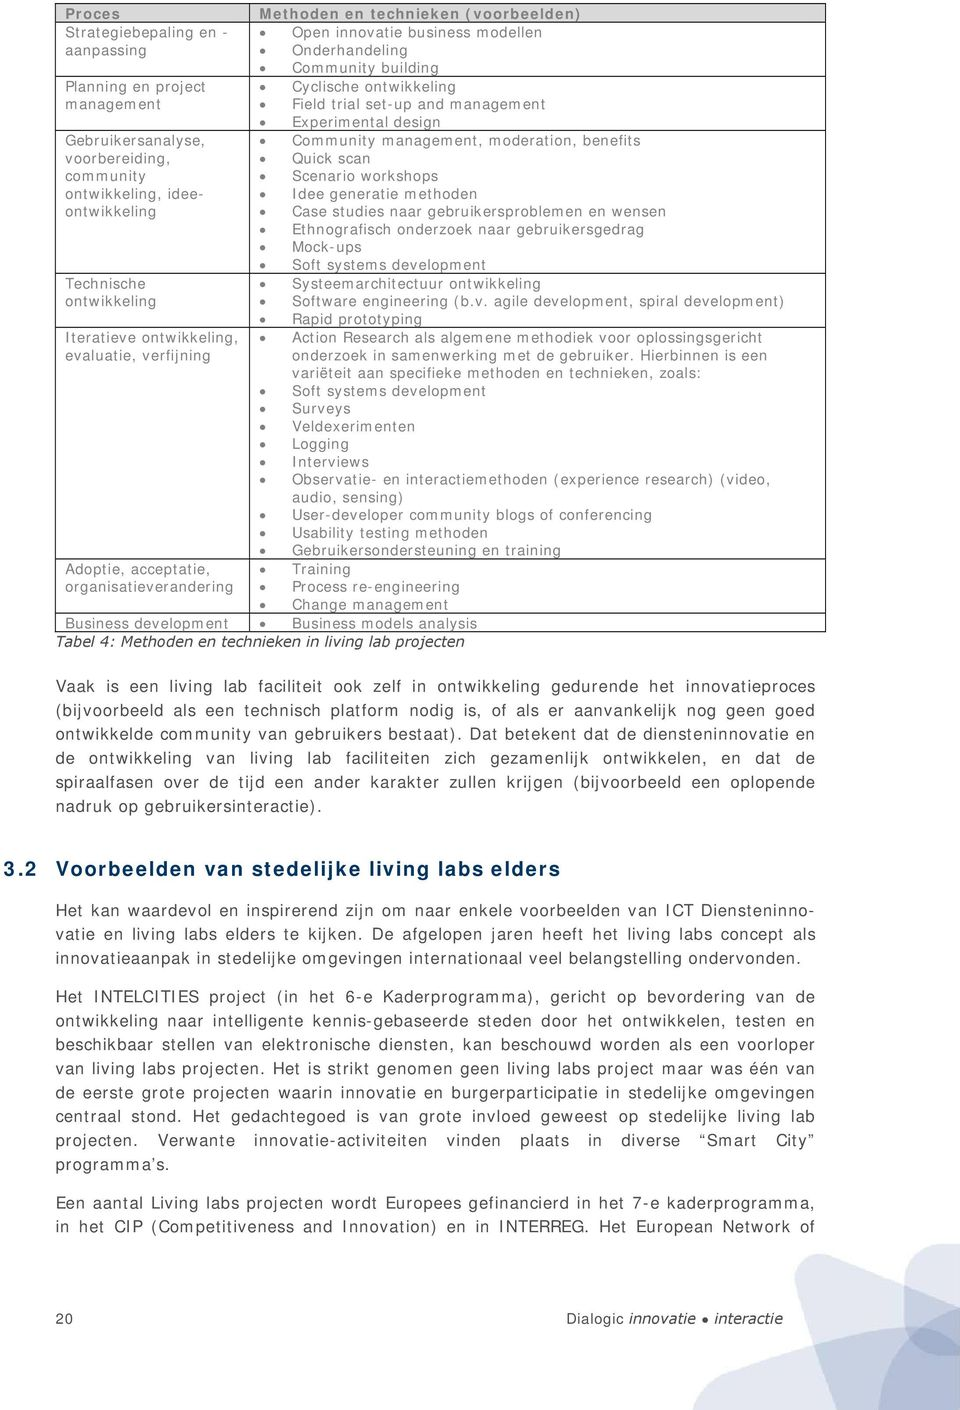 trial set-up and management Experimental design Community management, moderation, benefits Quick scan Scenario workshops Idee generatie methoden Case studies naar gebruikersproblemen en wensen